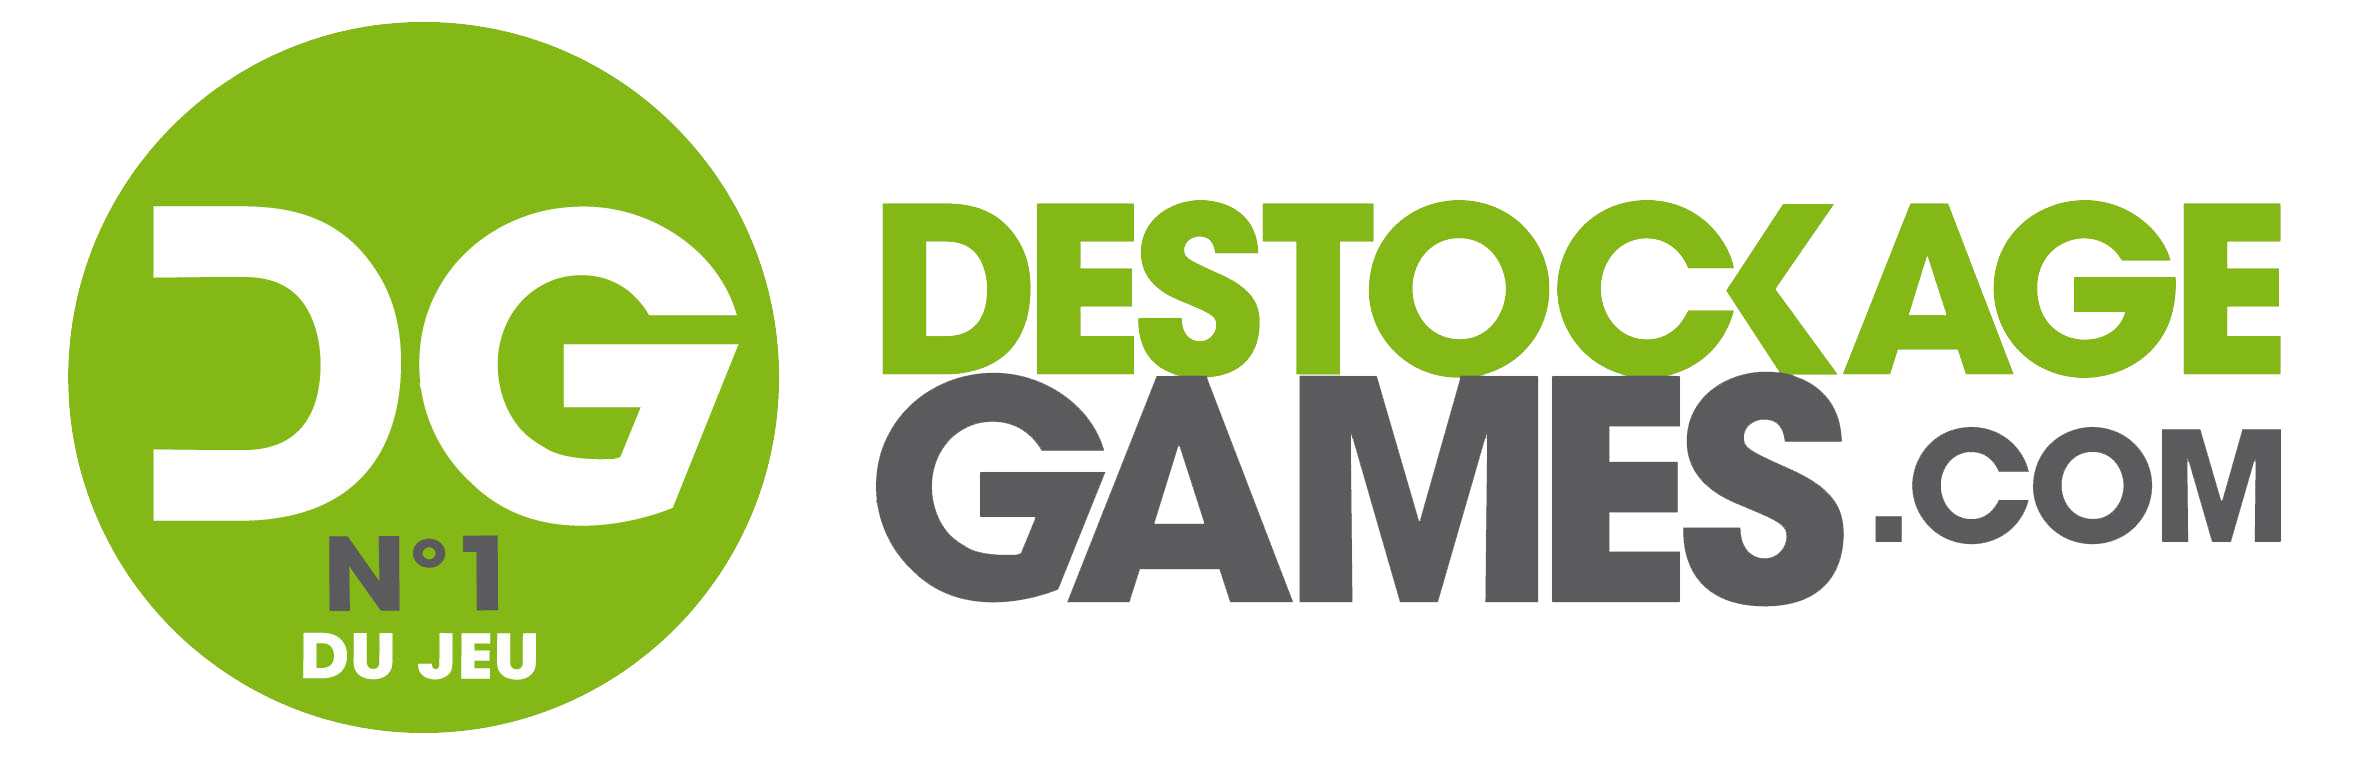 logo-destockage-games-hd